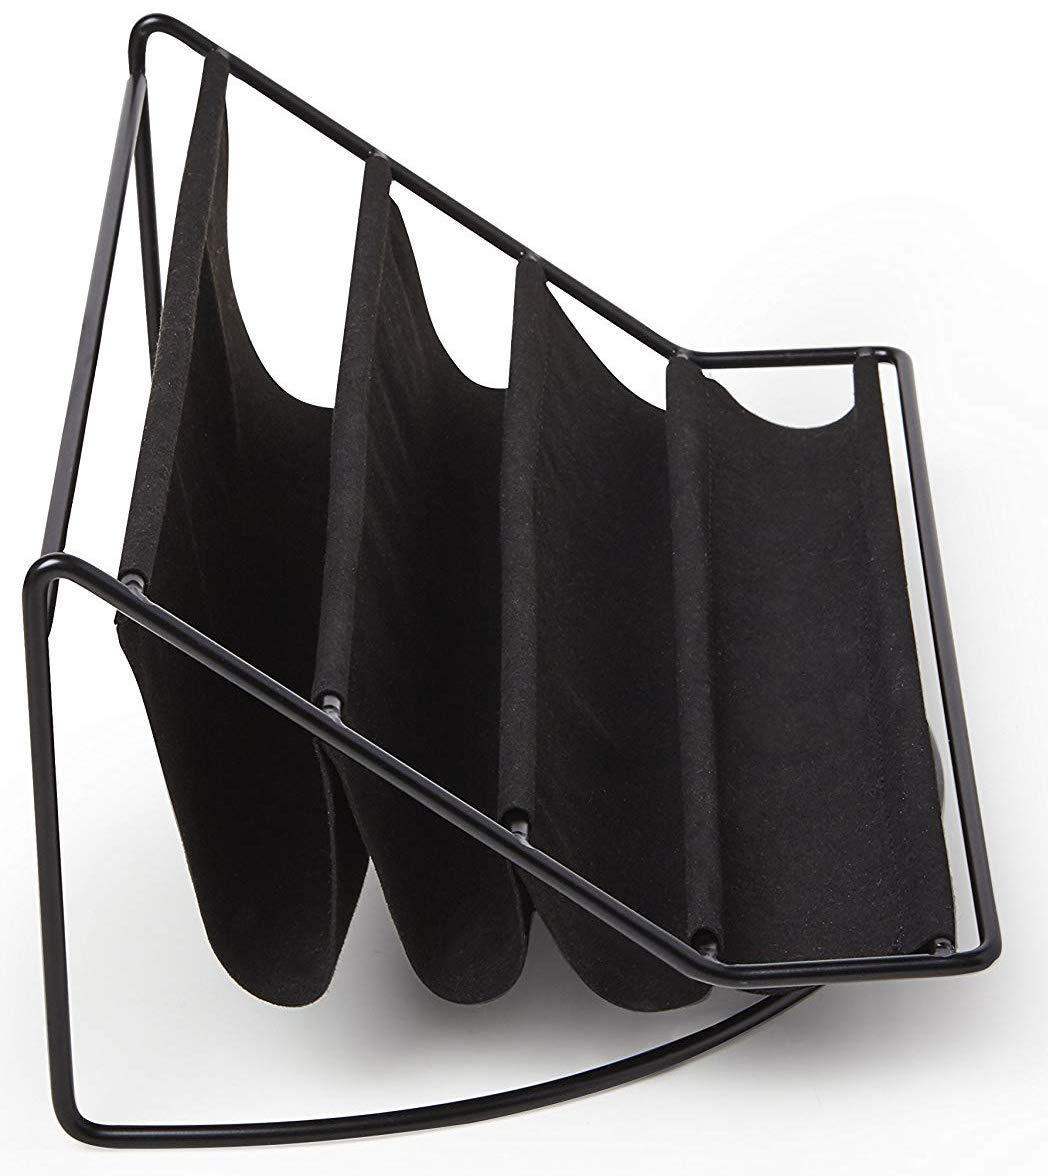 Umbra Hammock Accessory Organizer, Large, Black